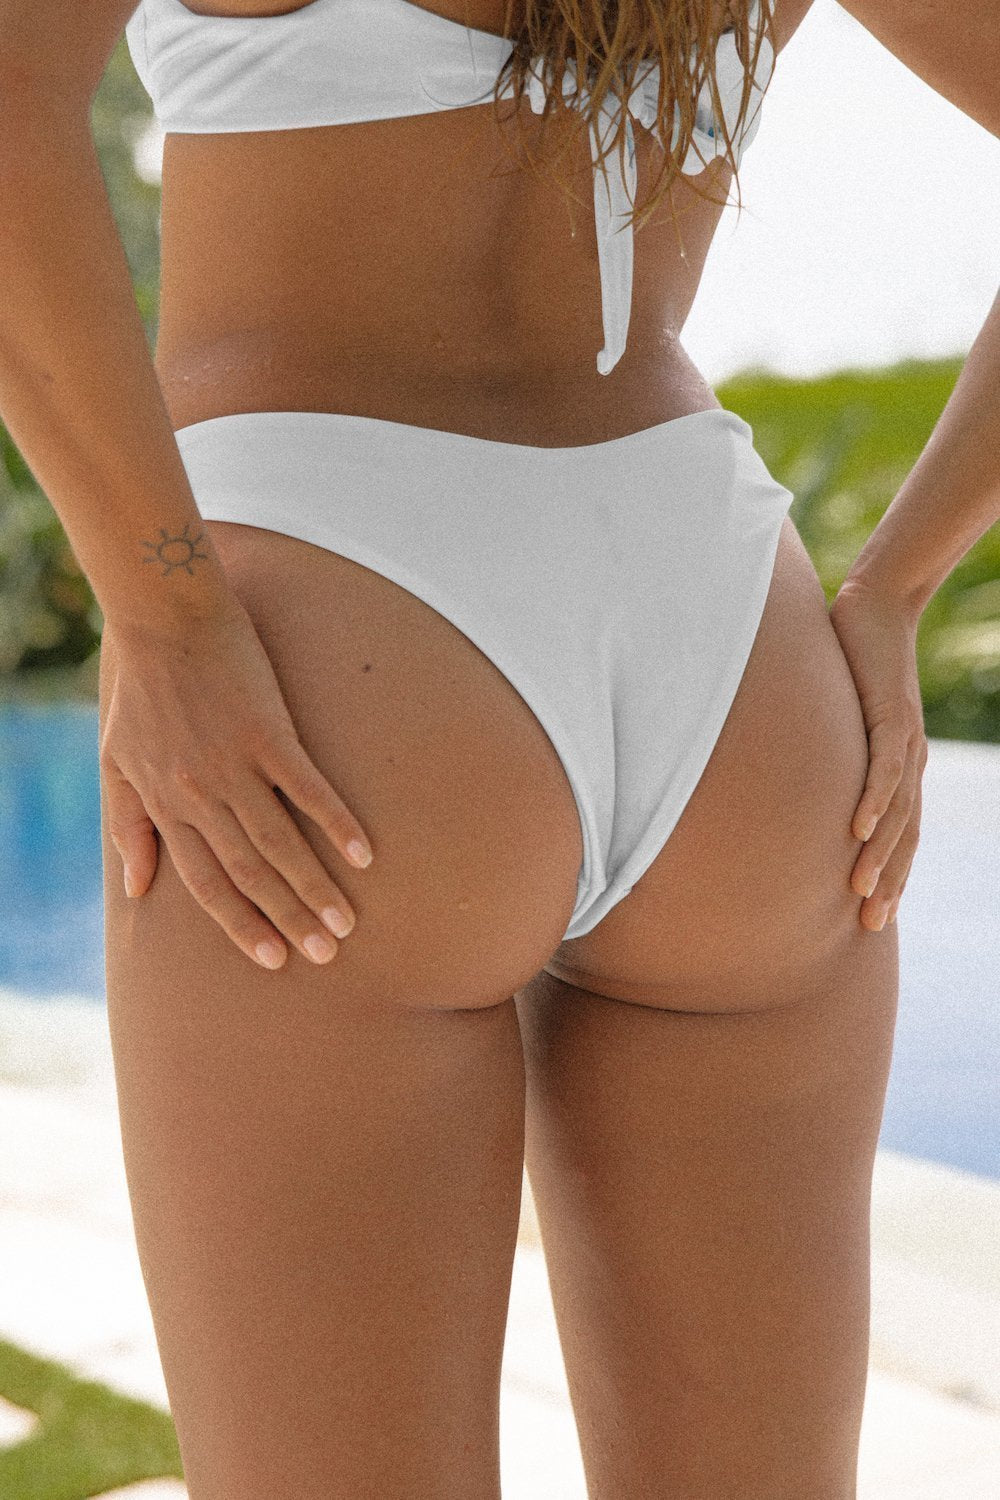 Ete Swimwear Ete X Matilda - Neptune Cheeky Bottoms (Shell) - Nomads Cove